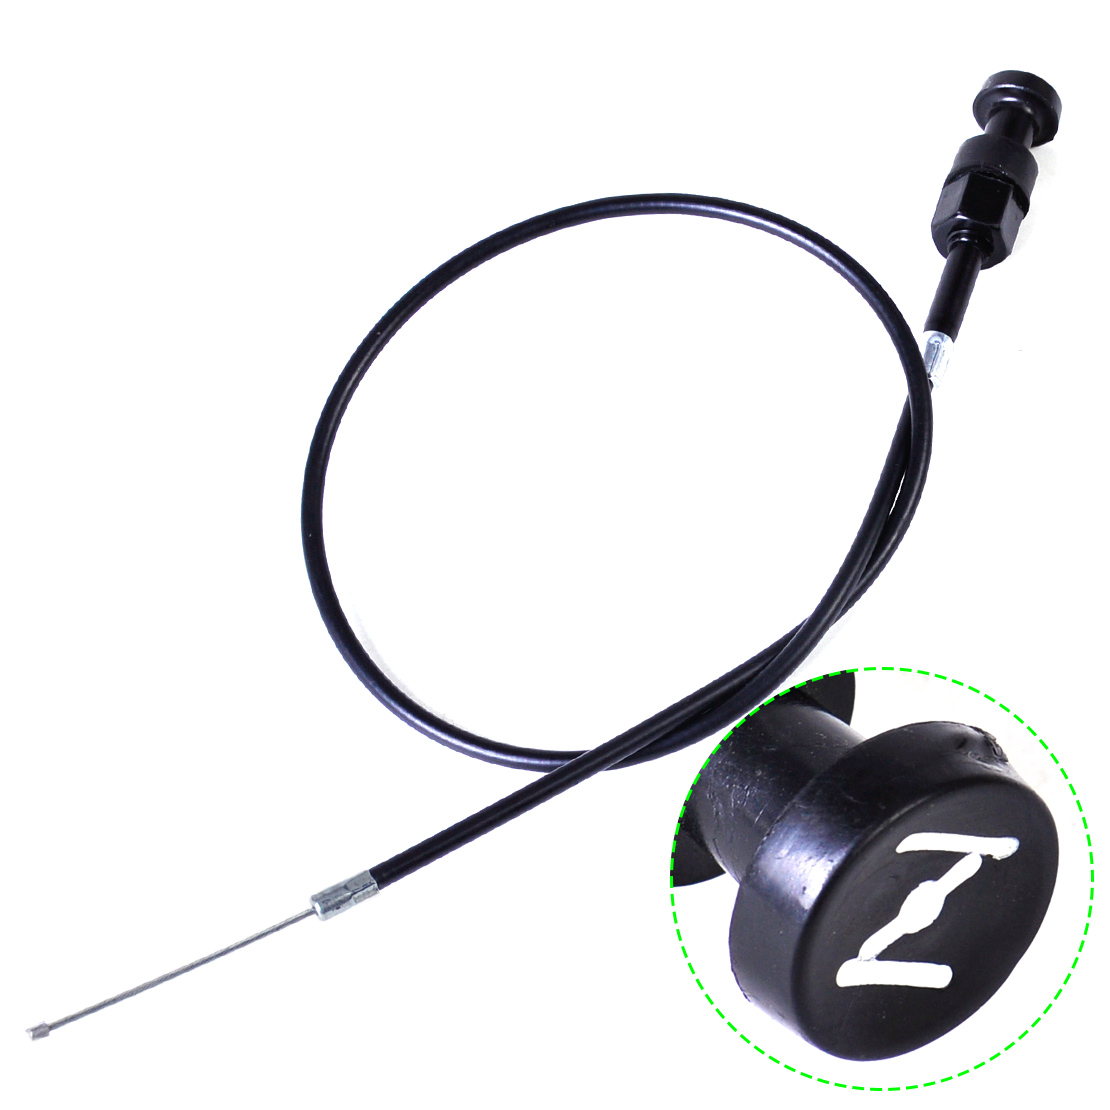 1Pc New Black 74cm 29'' Pull Choke Cable Throttle Assembly Fit for Yamaha PW50 Motorcycle Pit Dirt Bike High Quality free shipping brand new motorcycle throttle cable throttle wire for yamaha ttr250 guaranteed 100